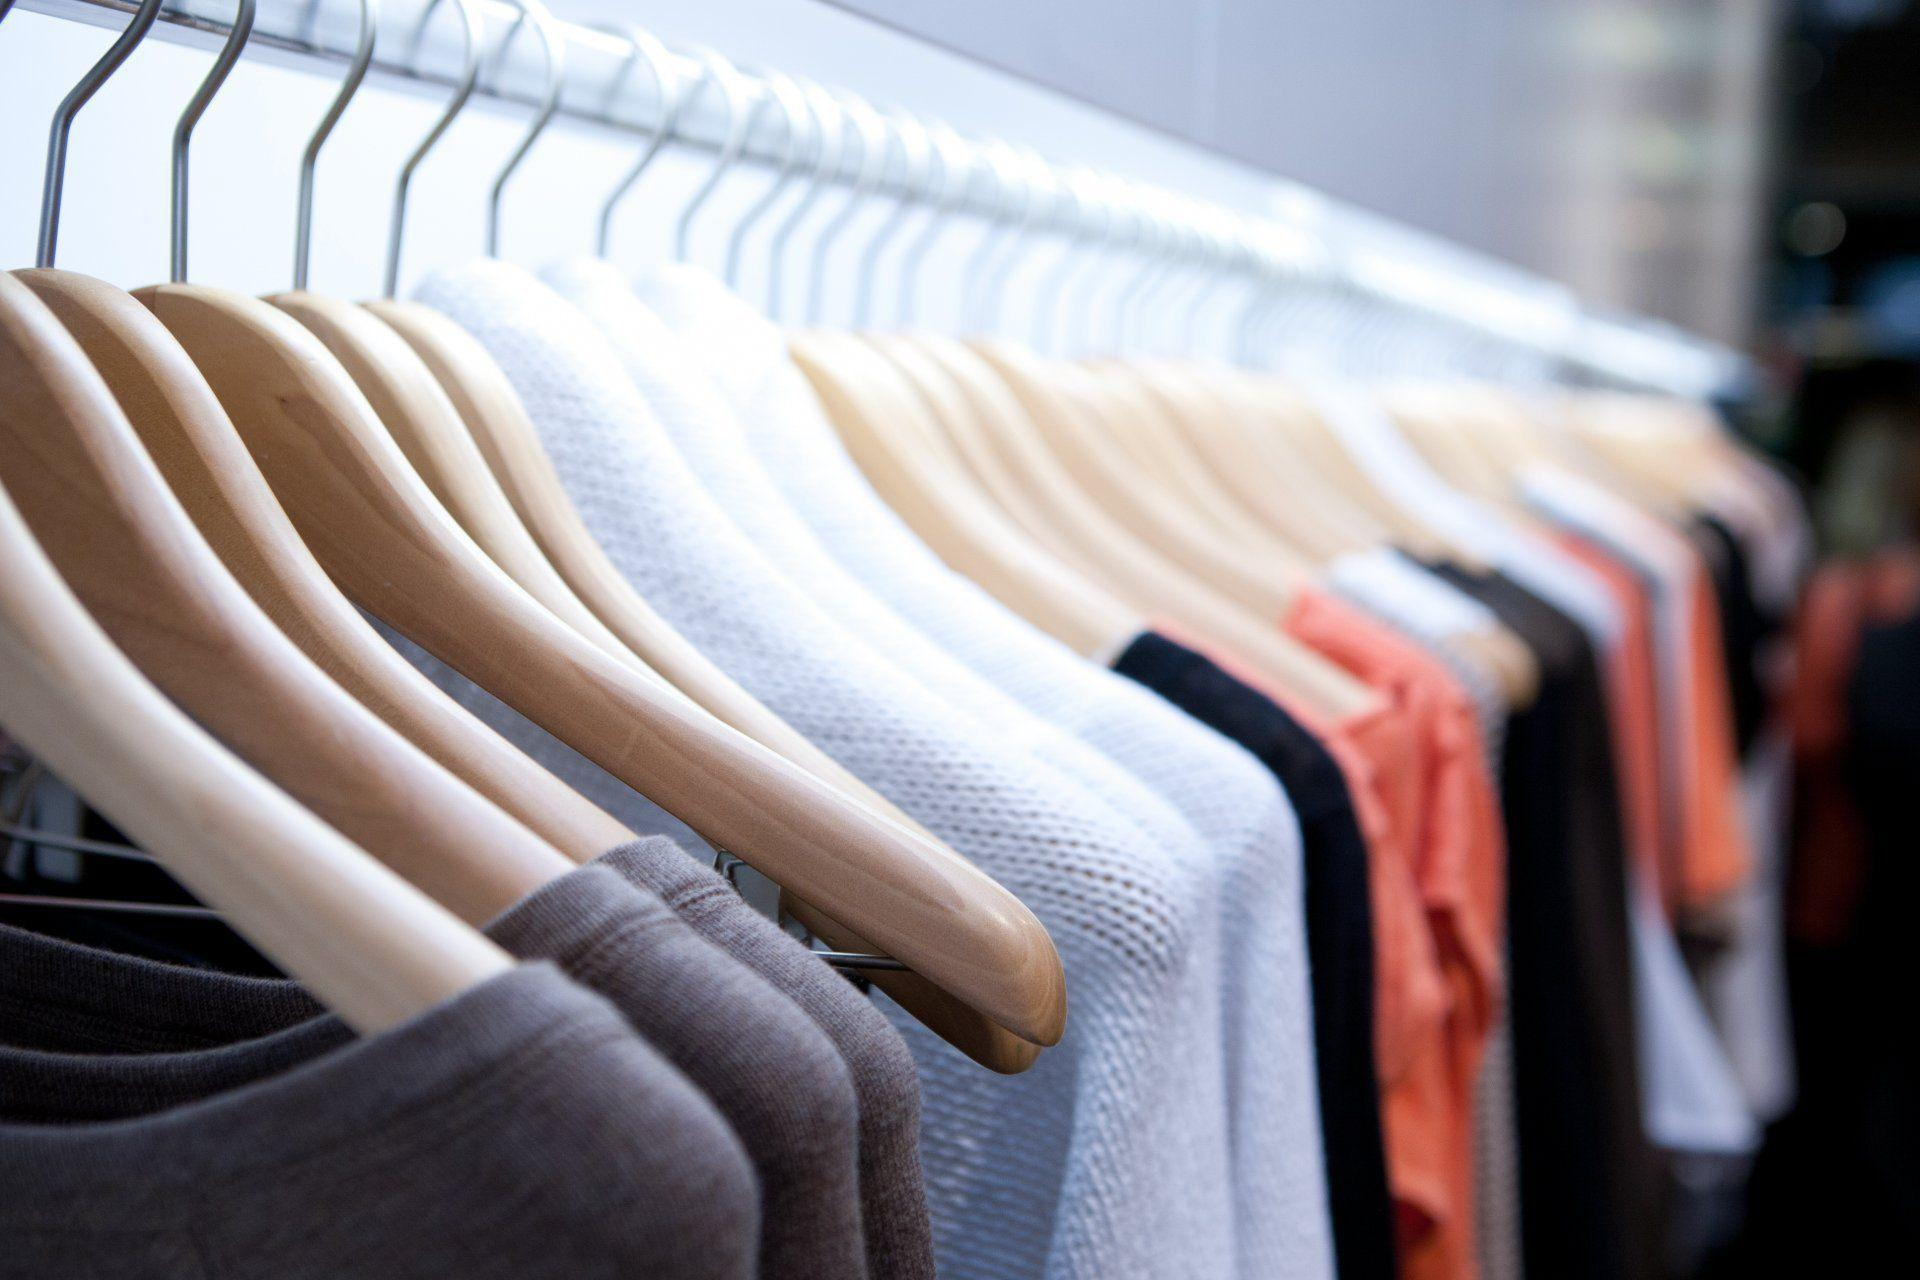 Clothing Wallpapers - Top Free Clothing Backgrounds - WallpaperAccess